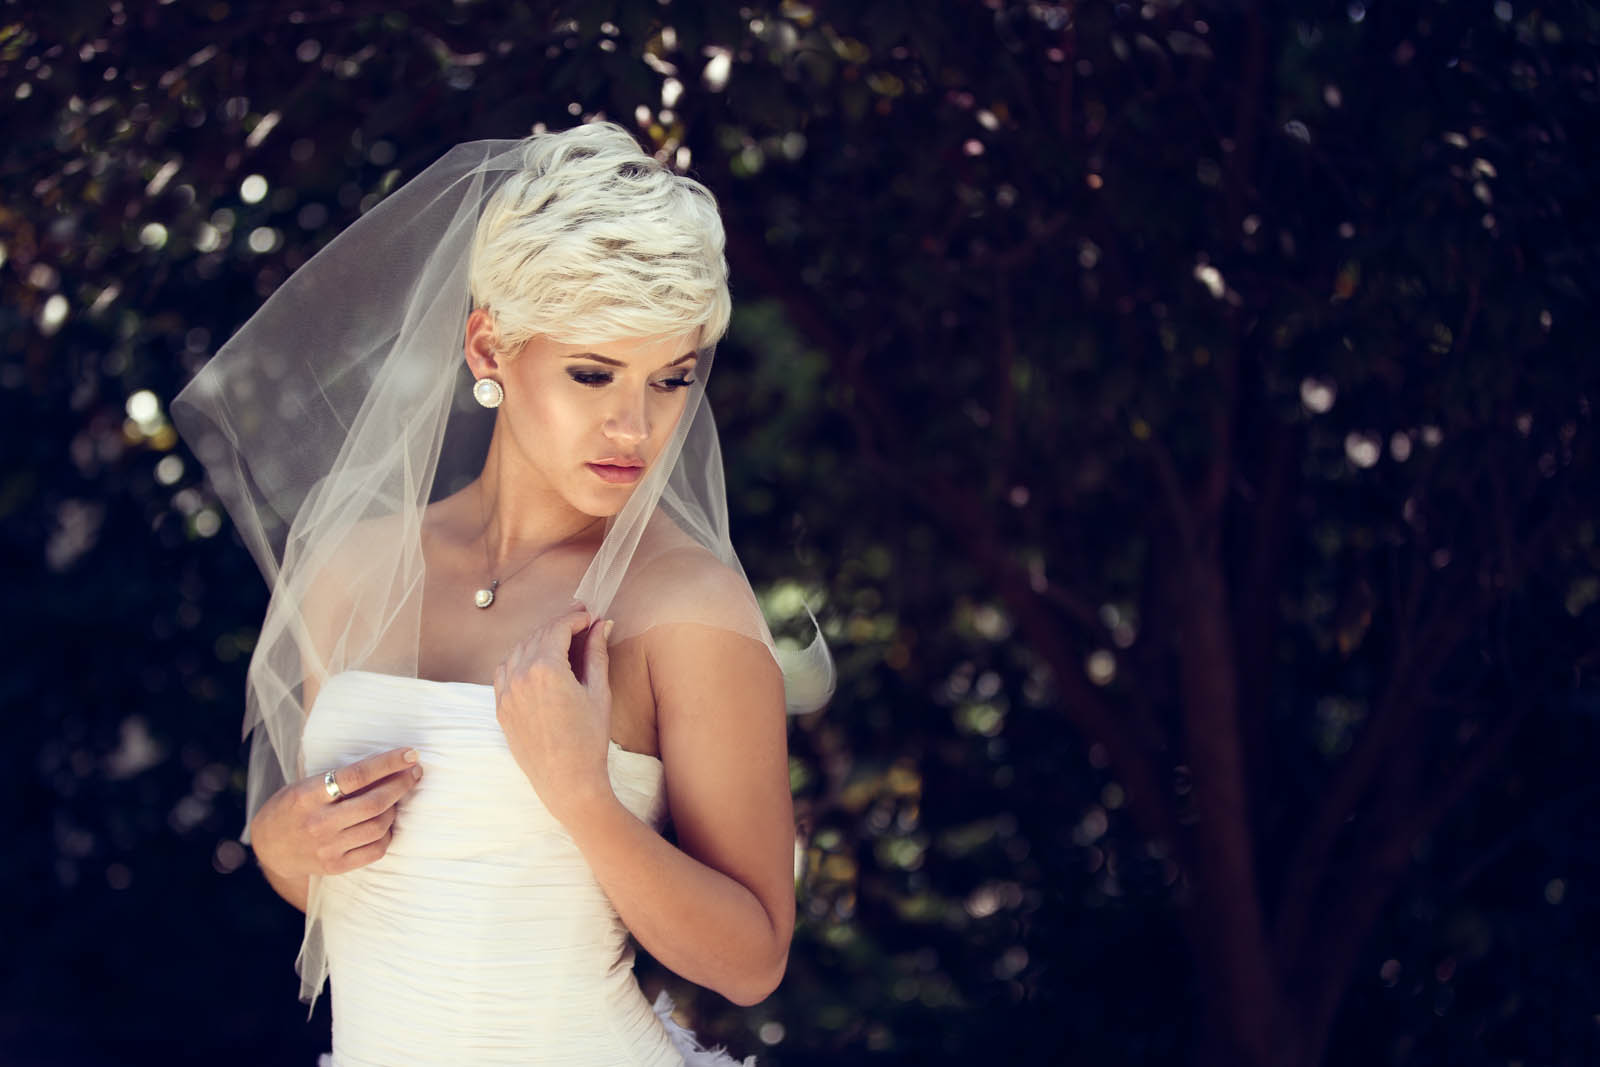 Bridal_Portraits_DukeGardens_2014_ErnestoSue-0075-Edit.jpg